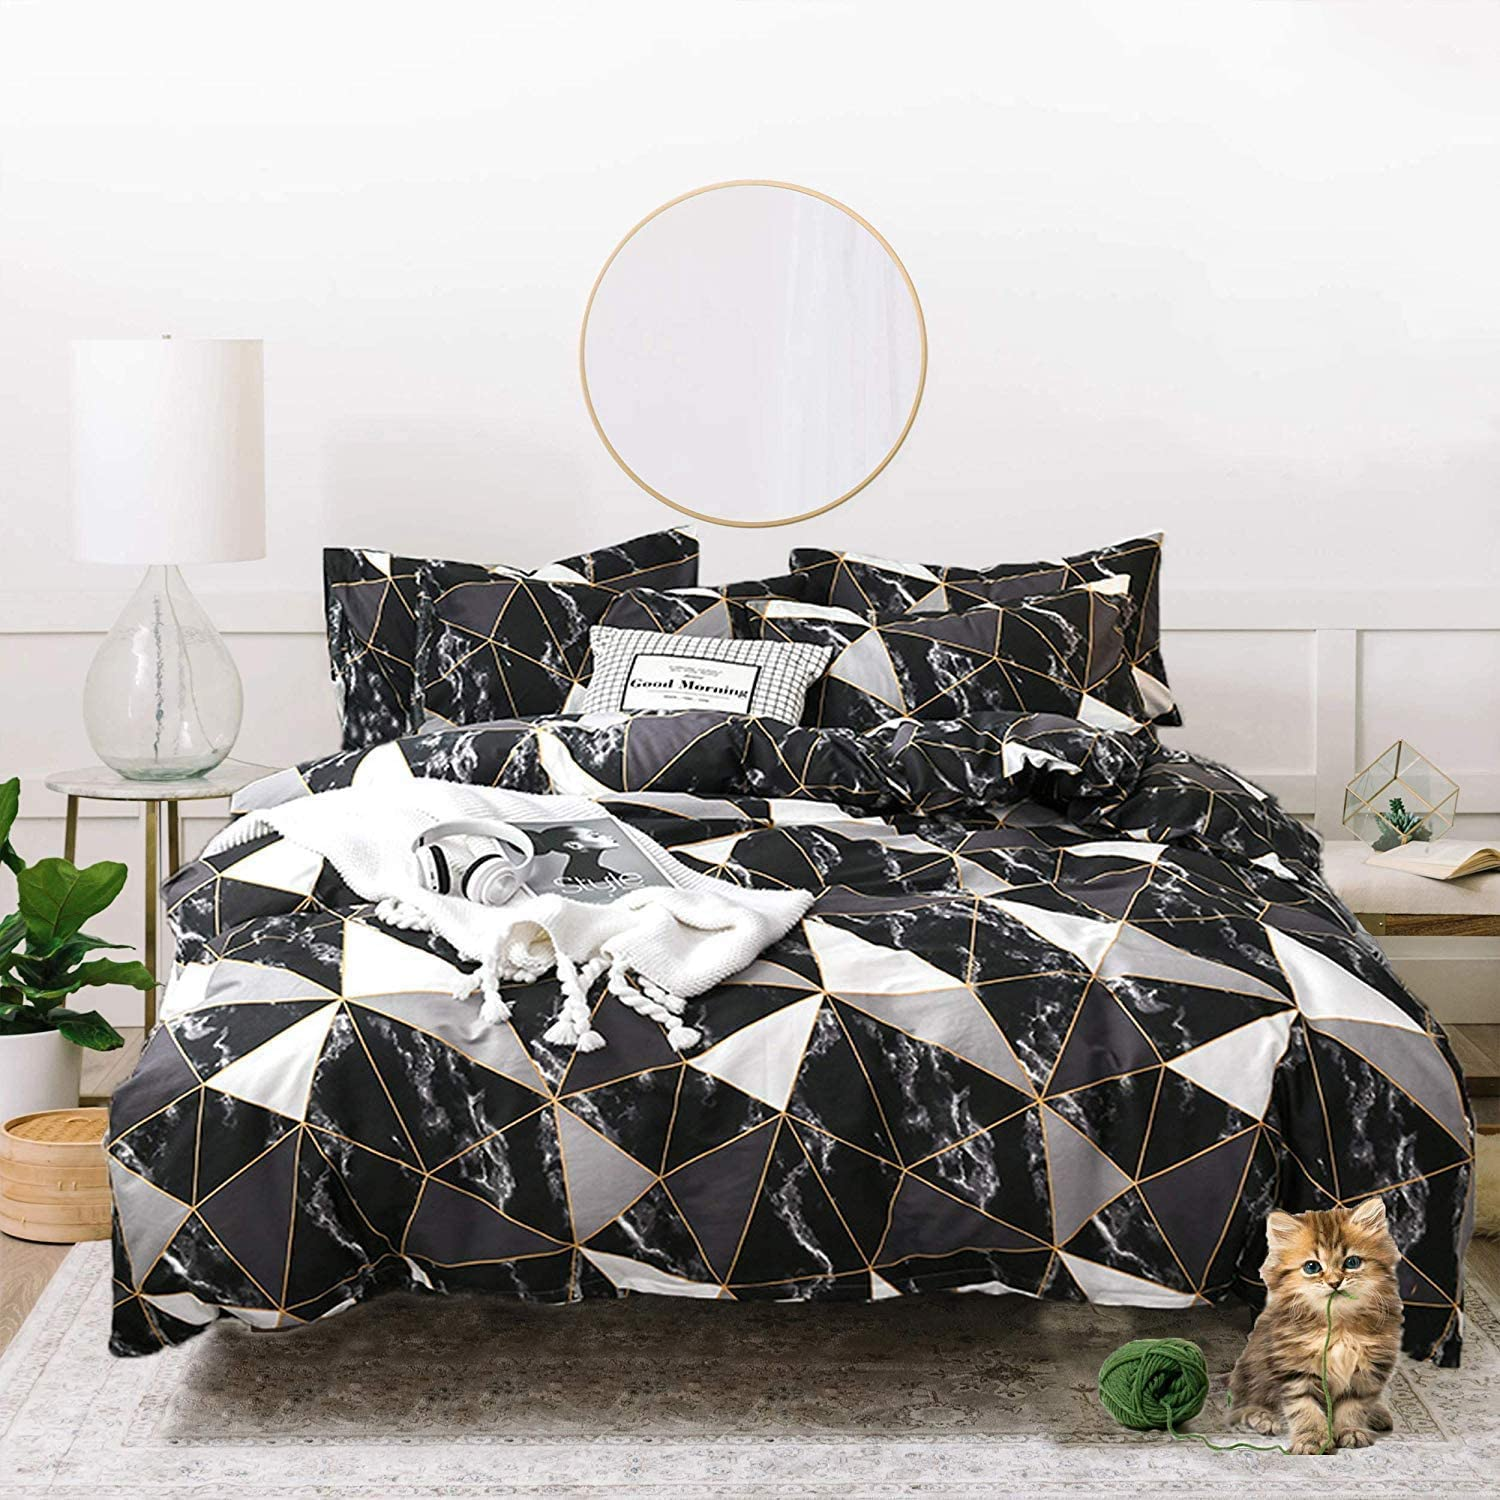 Jumeey Black Comforter Queen White Silver Grey Gold Plaid Bedding Full Size Men Women Modern Black Marble Bedding Comforters Sets Cotton Teen Boy Blocks Triangle Quilts Geometric Comforter Set Queen